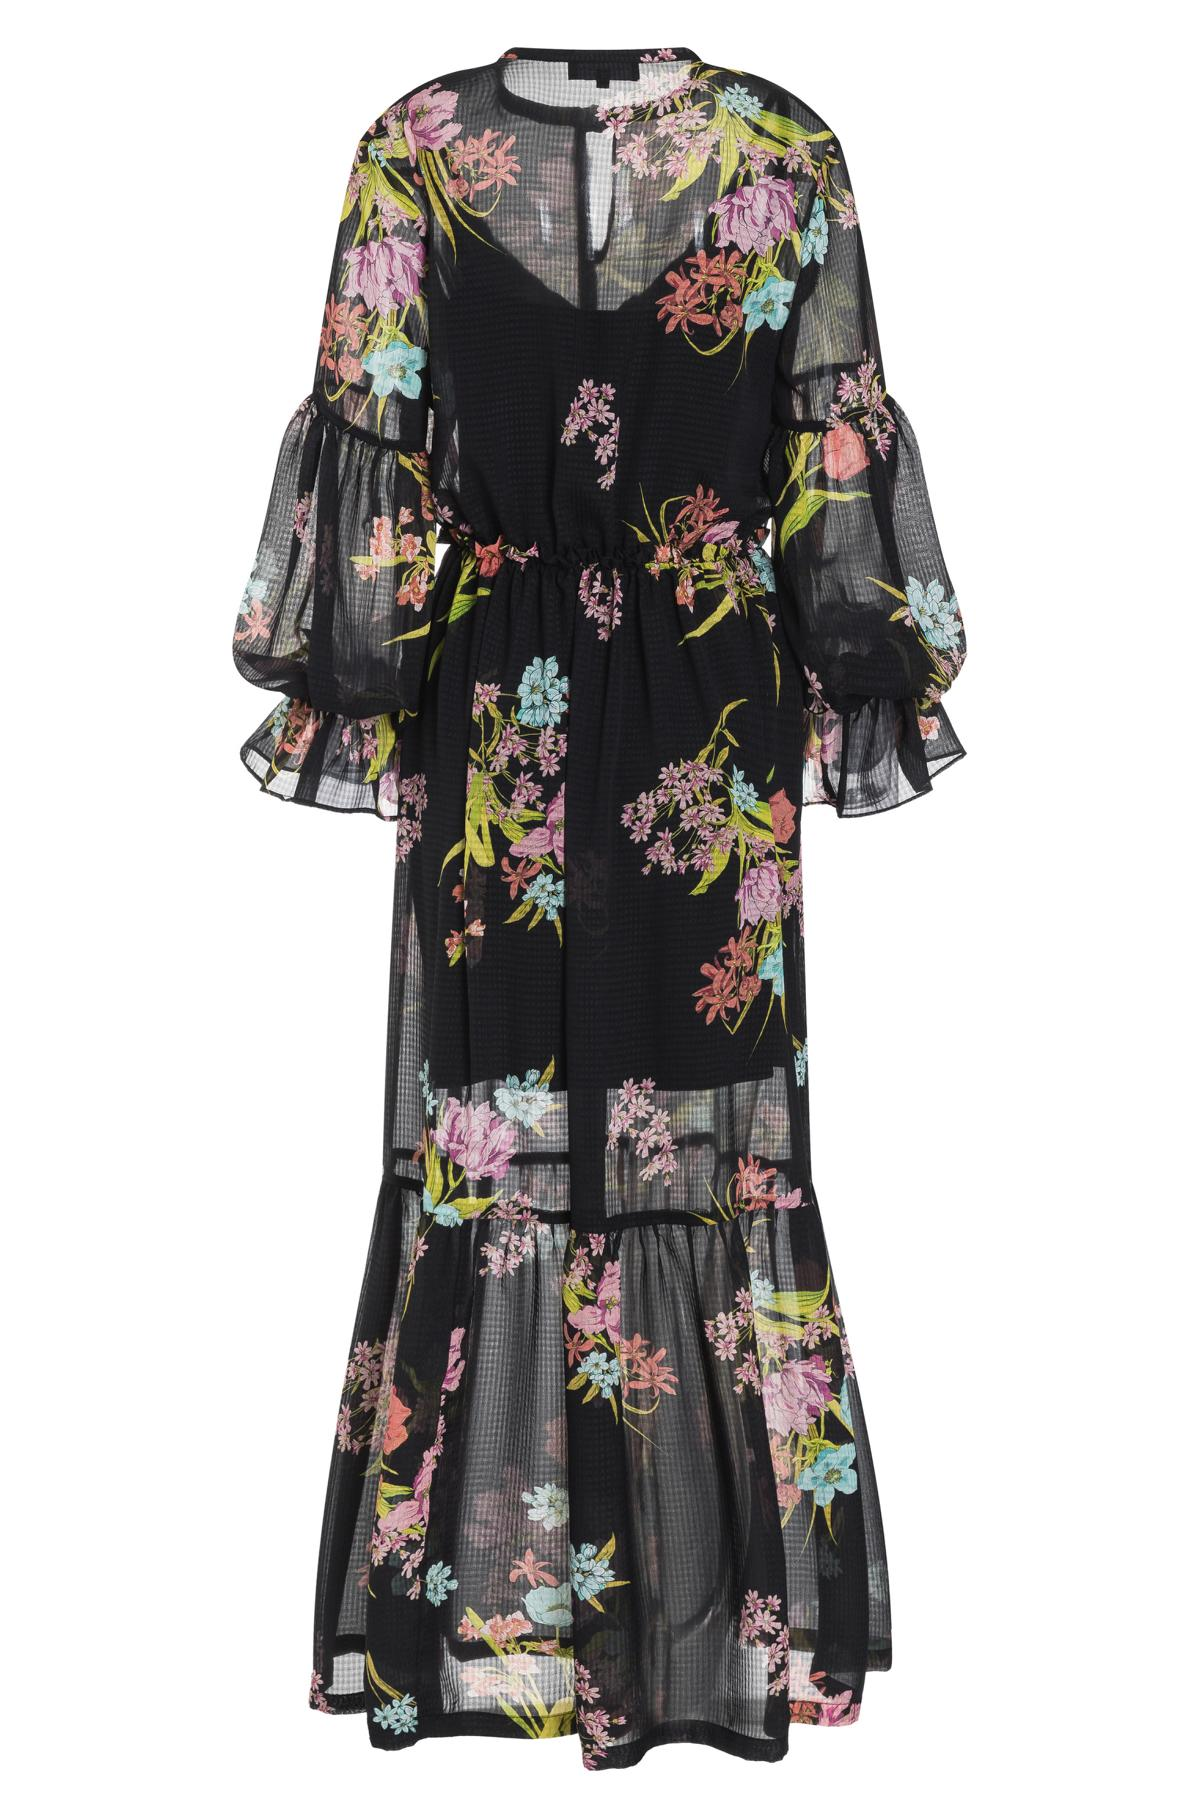 PRODUCT_PICTURE_PRE_7Ana Alcazar Maxi Kleid Tamtam PRODUCT_PICTURE_SUF_7